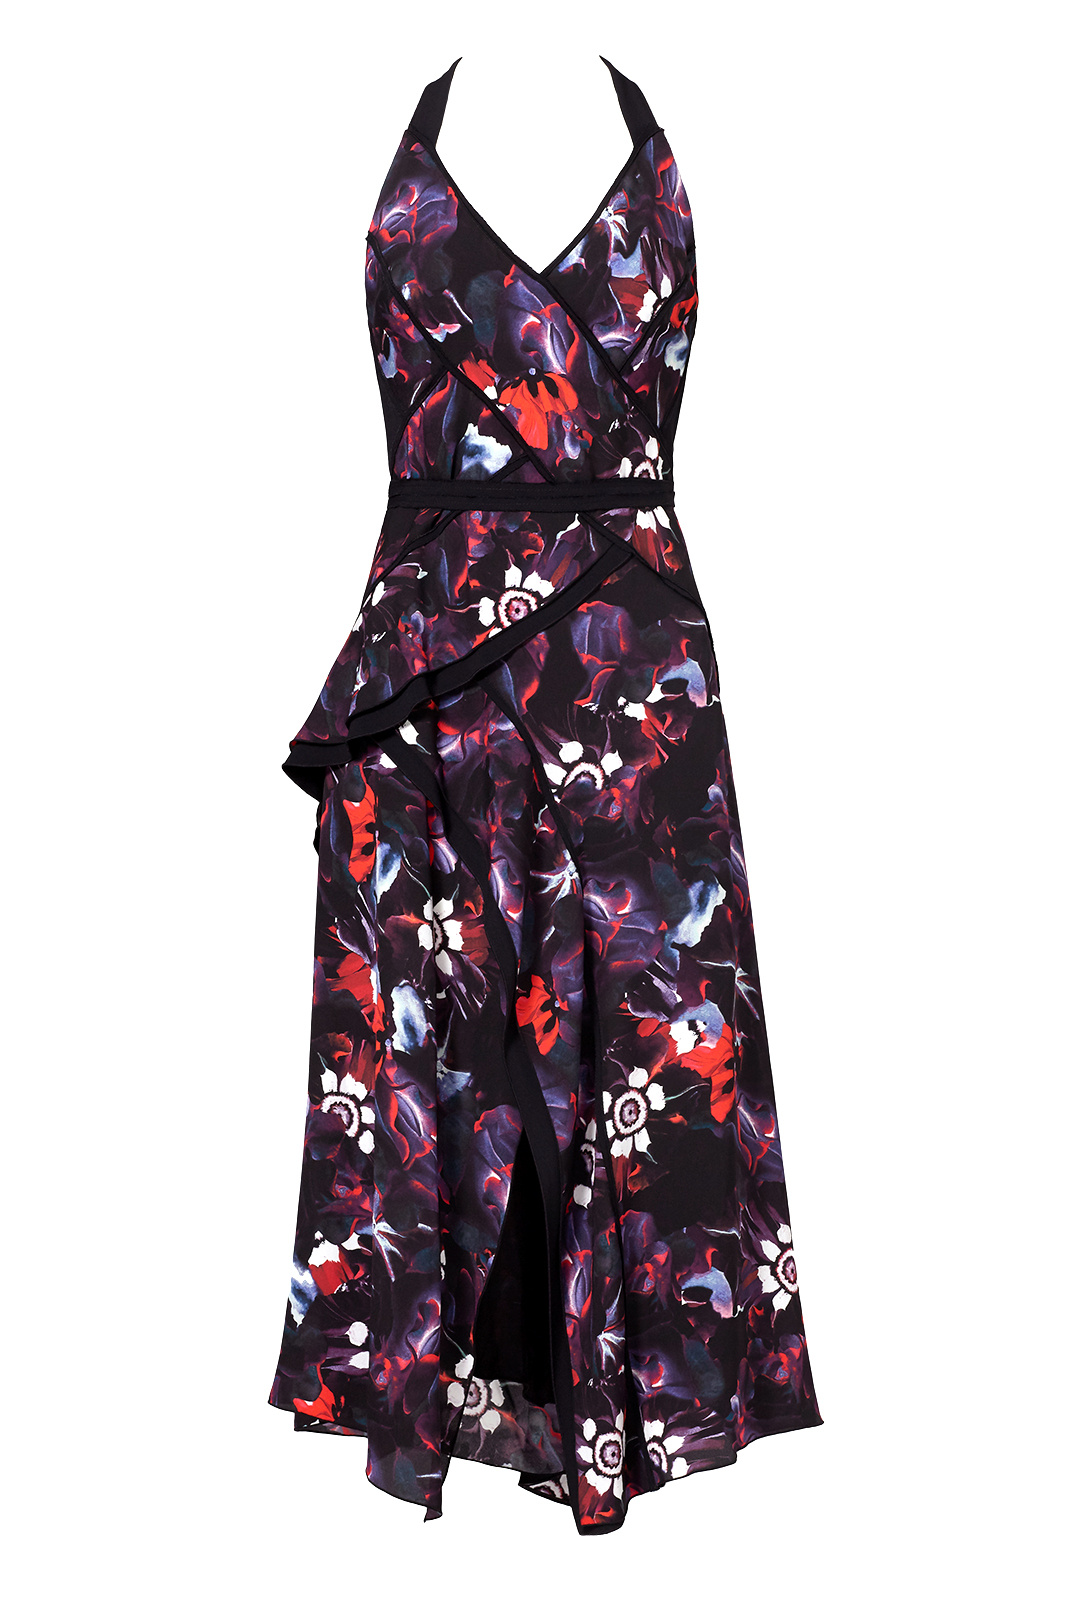 Copy of Floral Bodice Overlap Dress